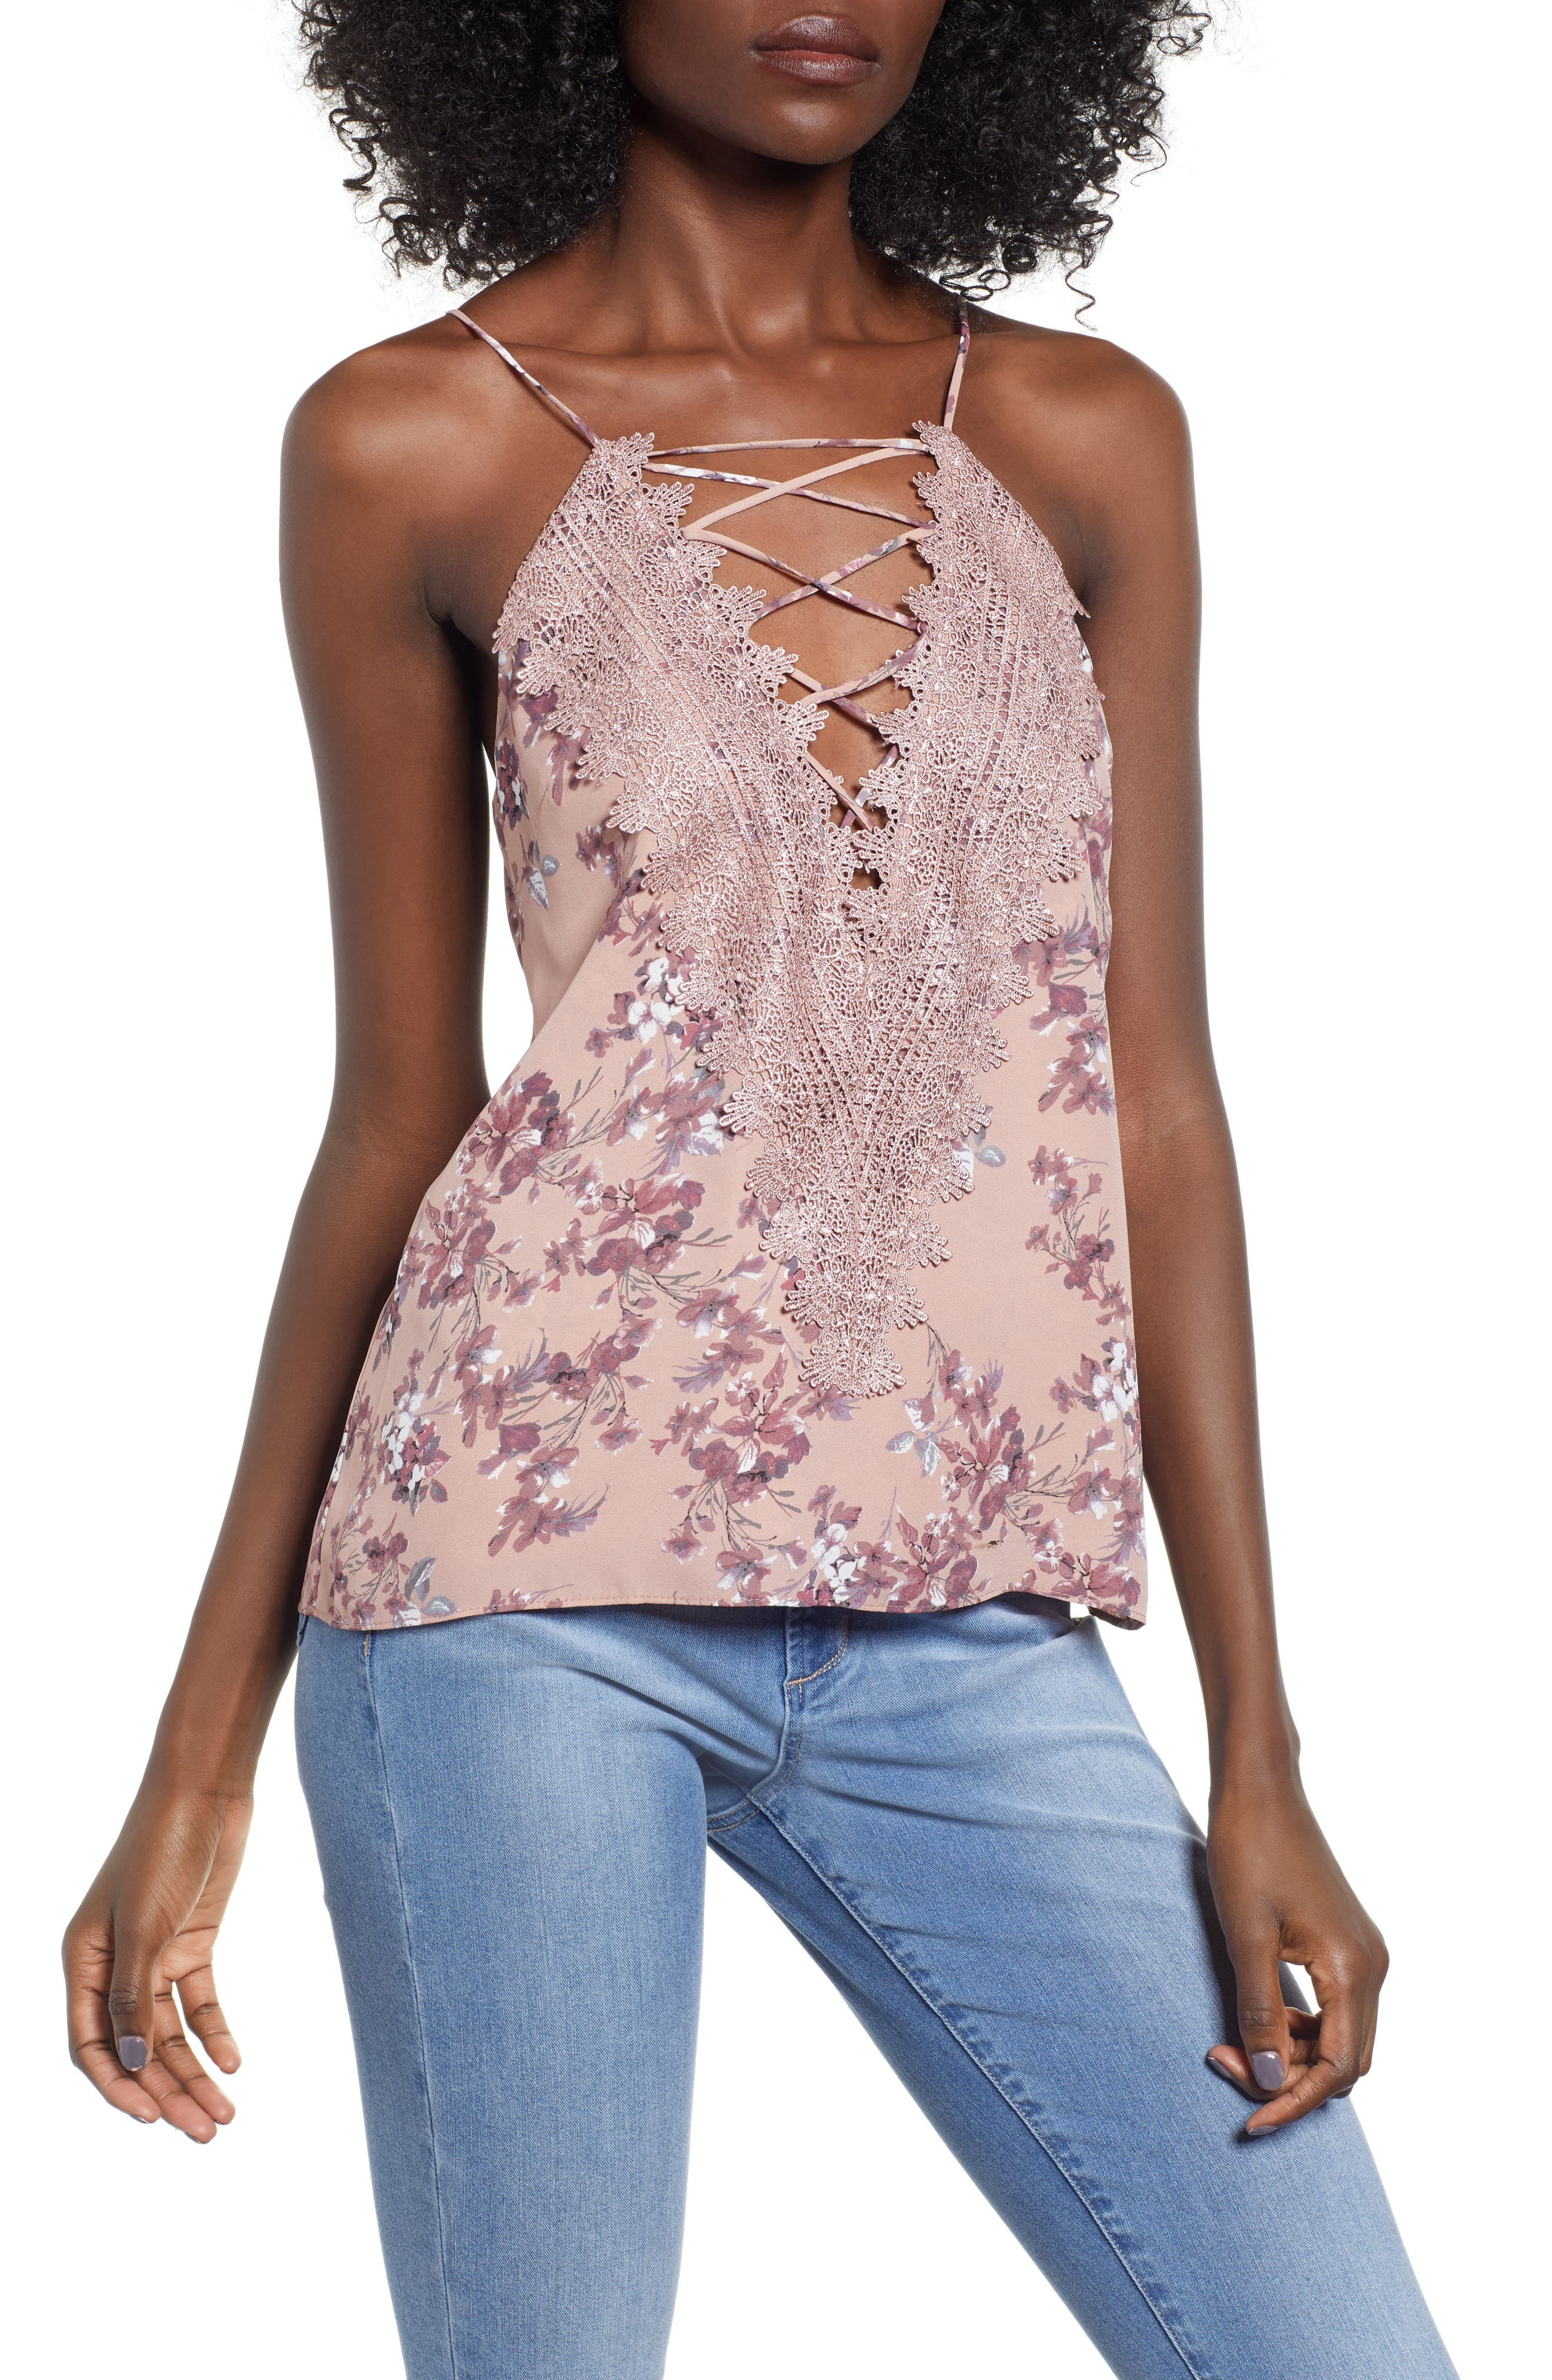 Posie Strappy Camisole,                             Main thumbnail 1, color,                             DUSTY MAUVE FLORAL